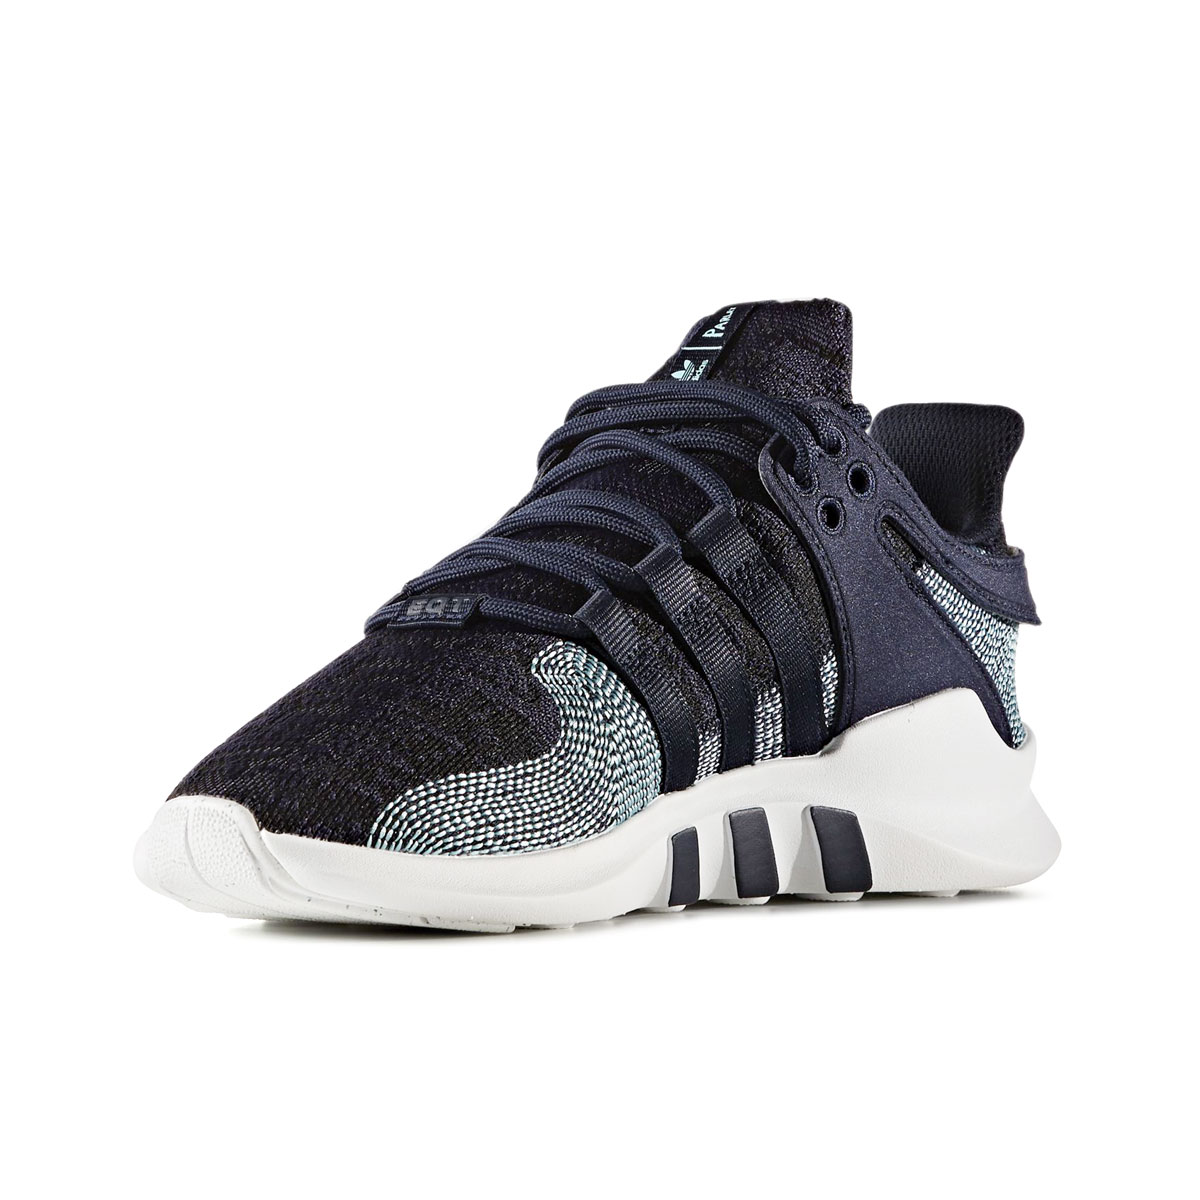 cac8aadfe149 adidas Originals EQT SUPPORT ADV CK PARLEY (Adidas originals EQT support CK  soft-headed Ray) Legend Ink Blue Sprit Running White 17FW-I